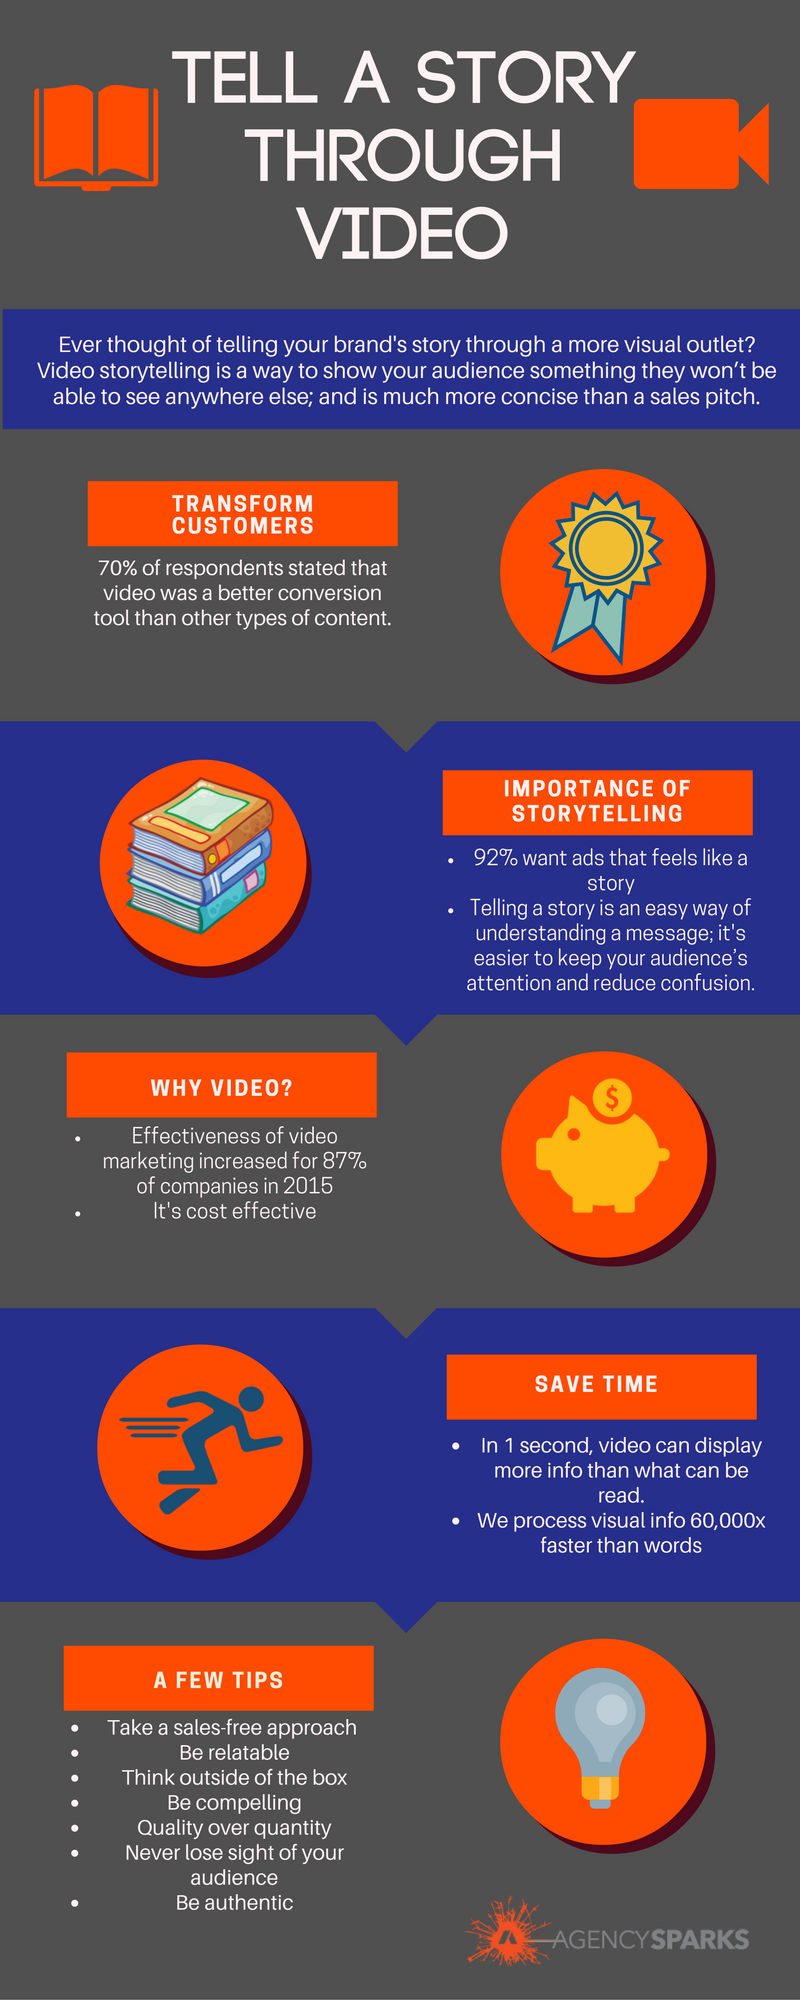 Video Marketing Infographic - AgencySparks